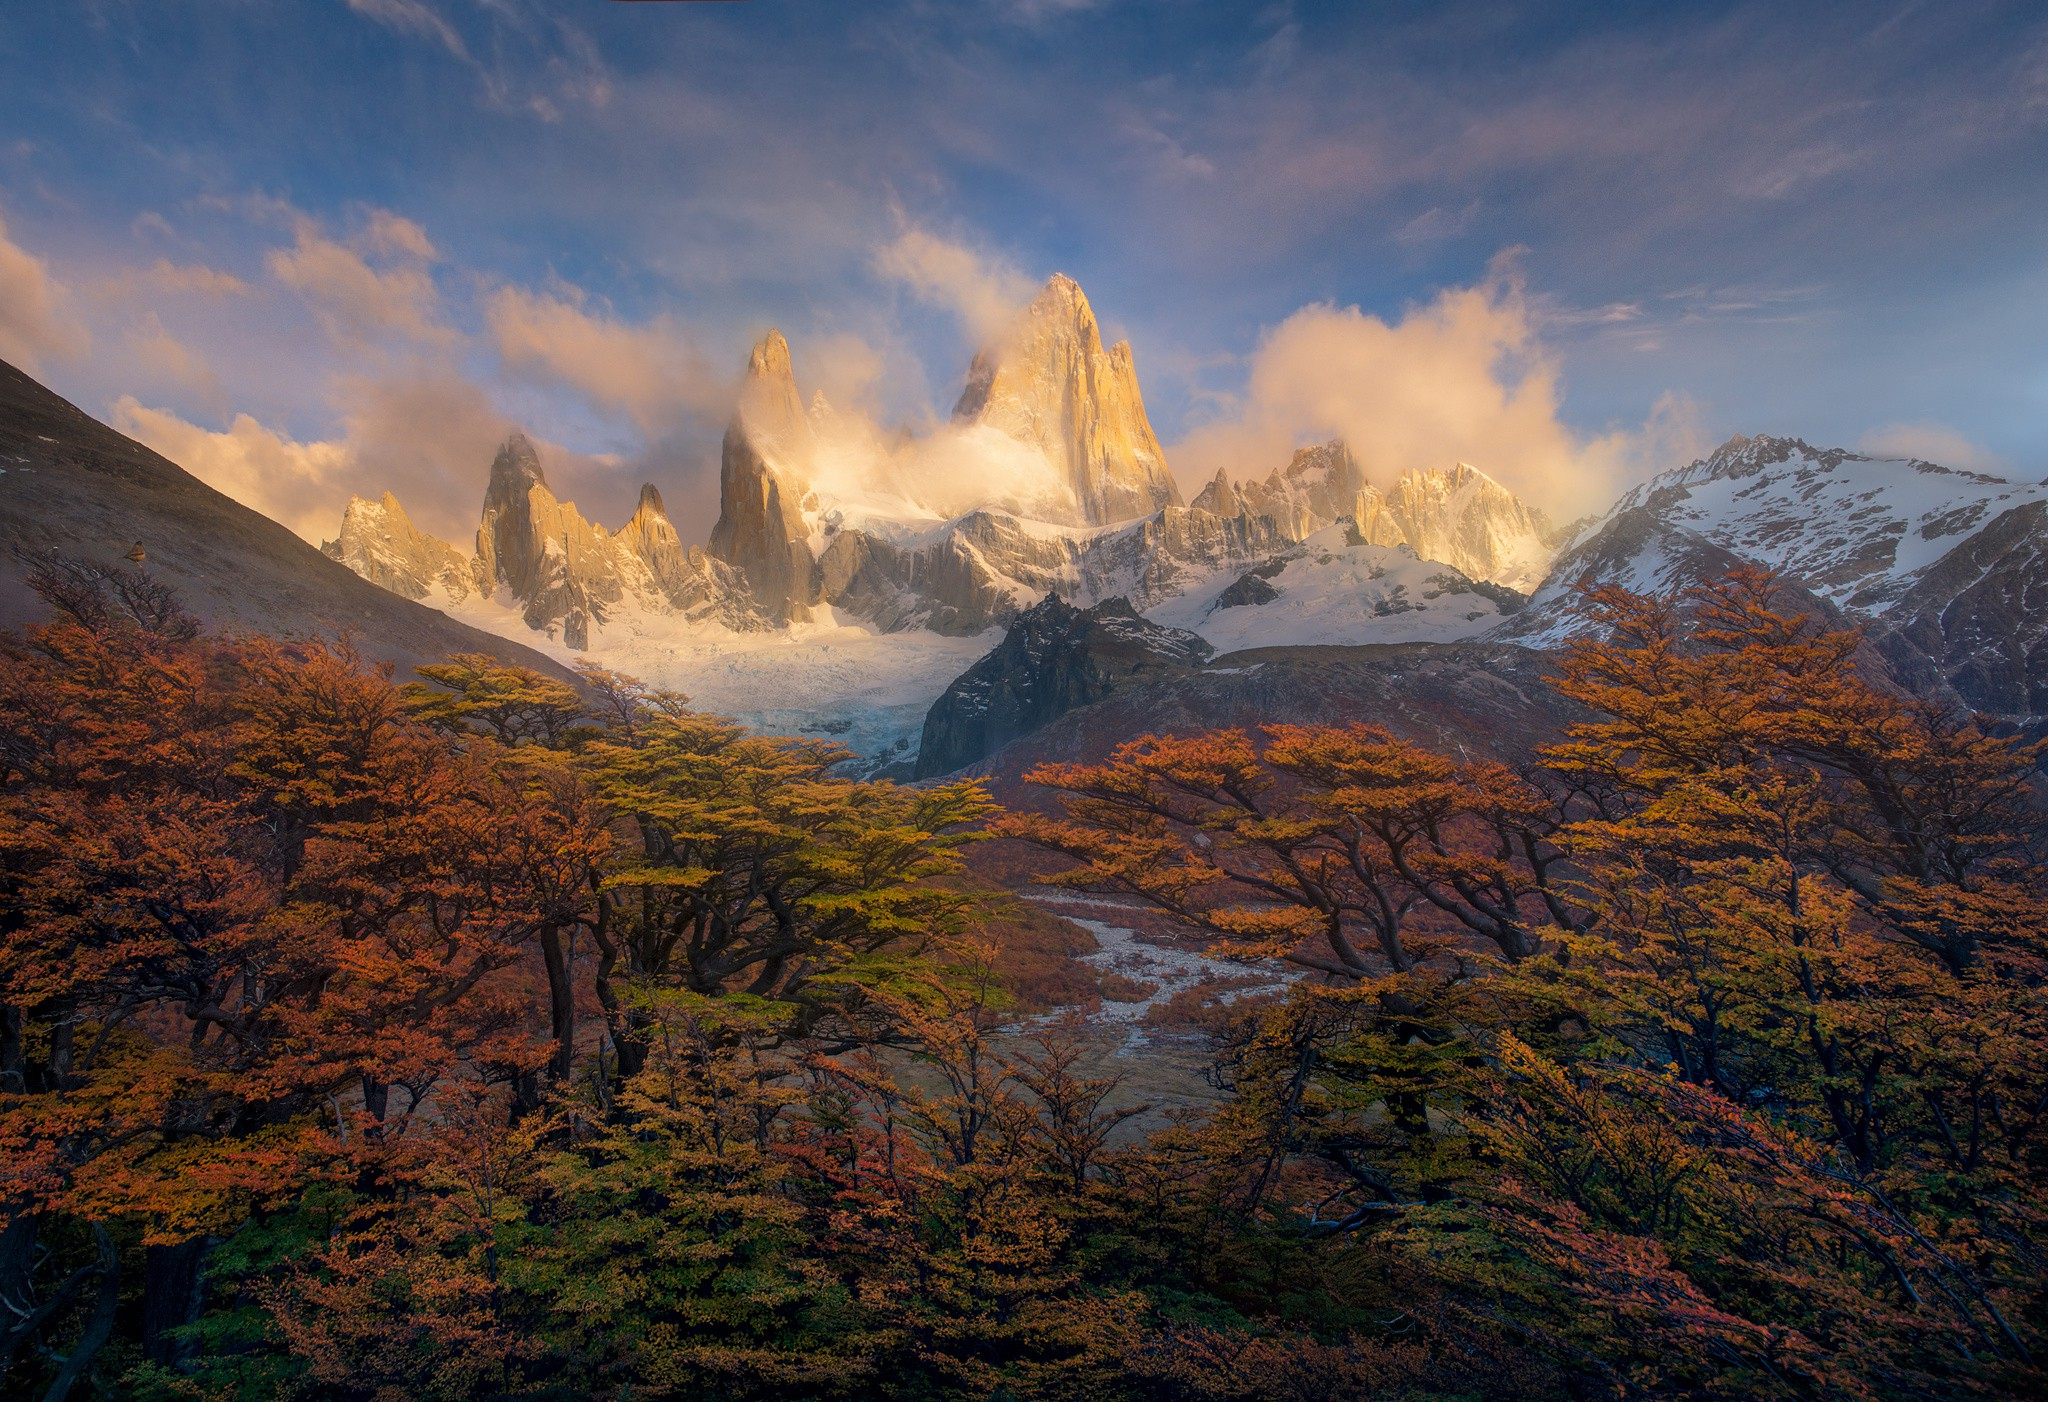 Colorful Fall Scene Wallpaper South America Patagonia Autumn Wallpaper Nature And